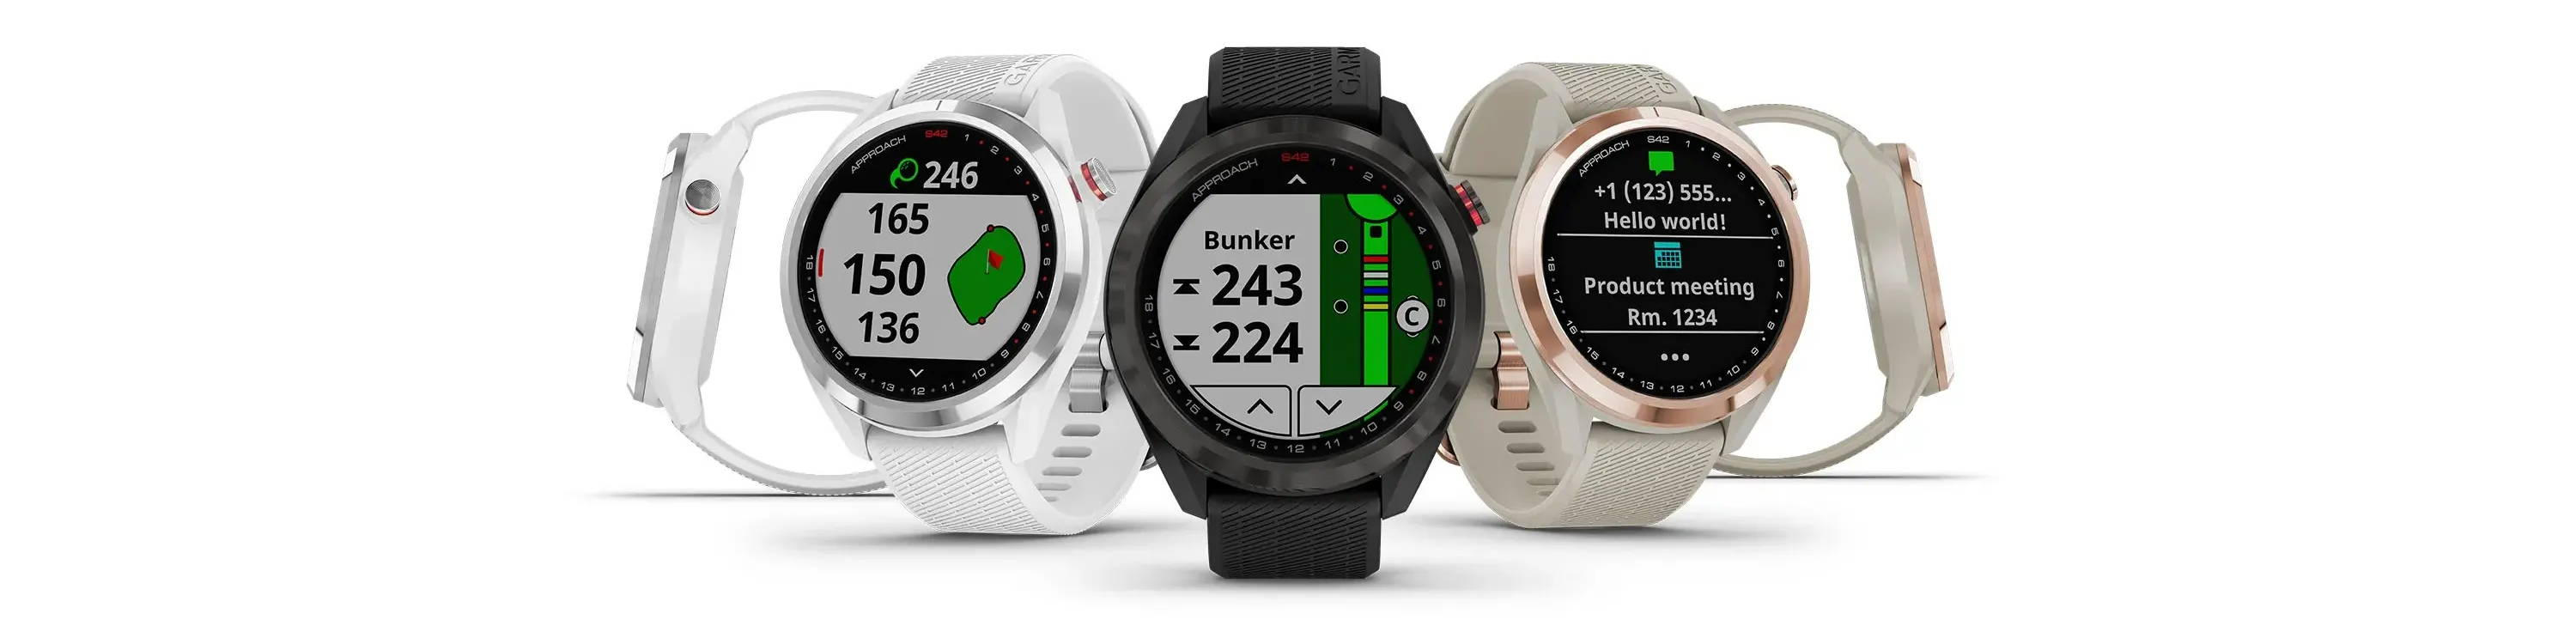 The Garmin Approach line of GPS golf watches for the 2021 season.